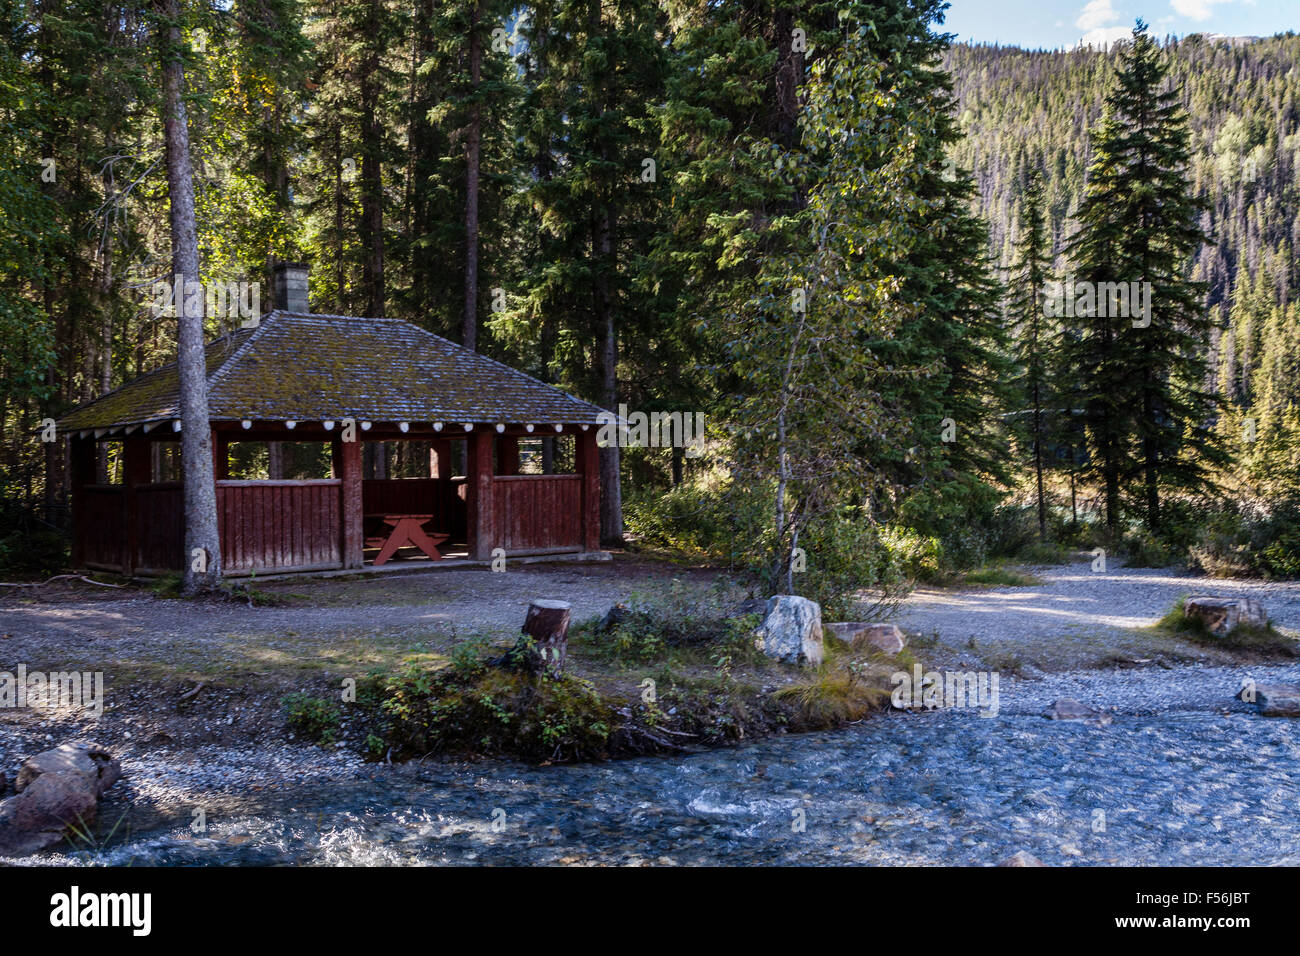 Cook House, roadside campsite and picnic area along the David Thompson Highway in the forest of Rocky Mountains, - Stock Image